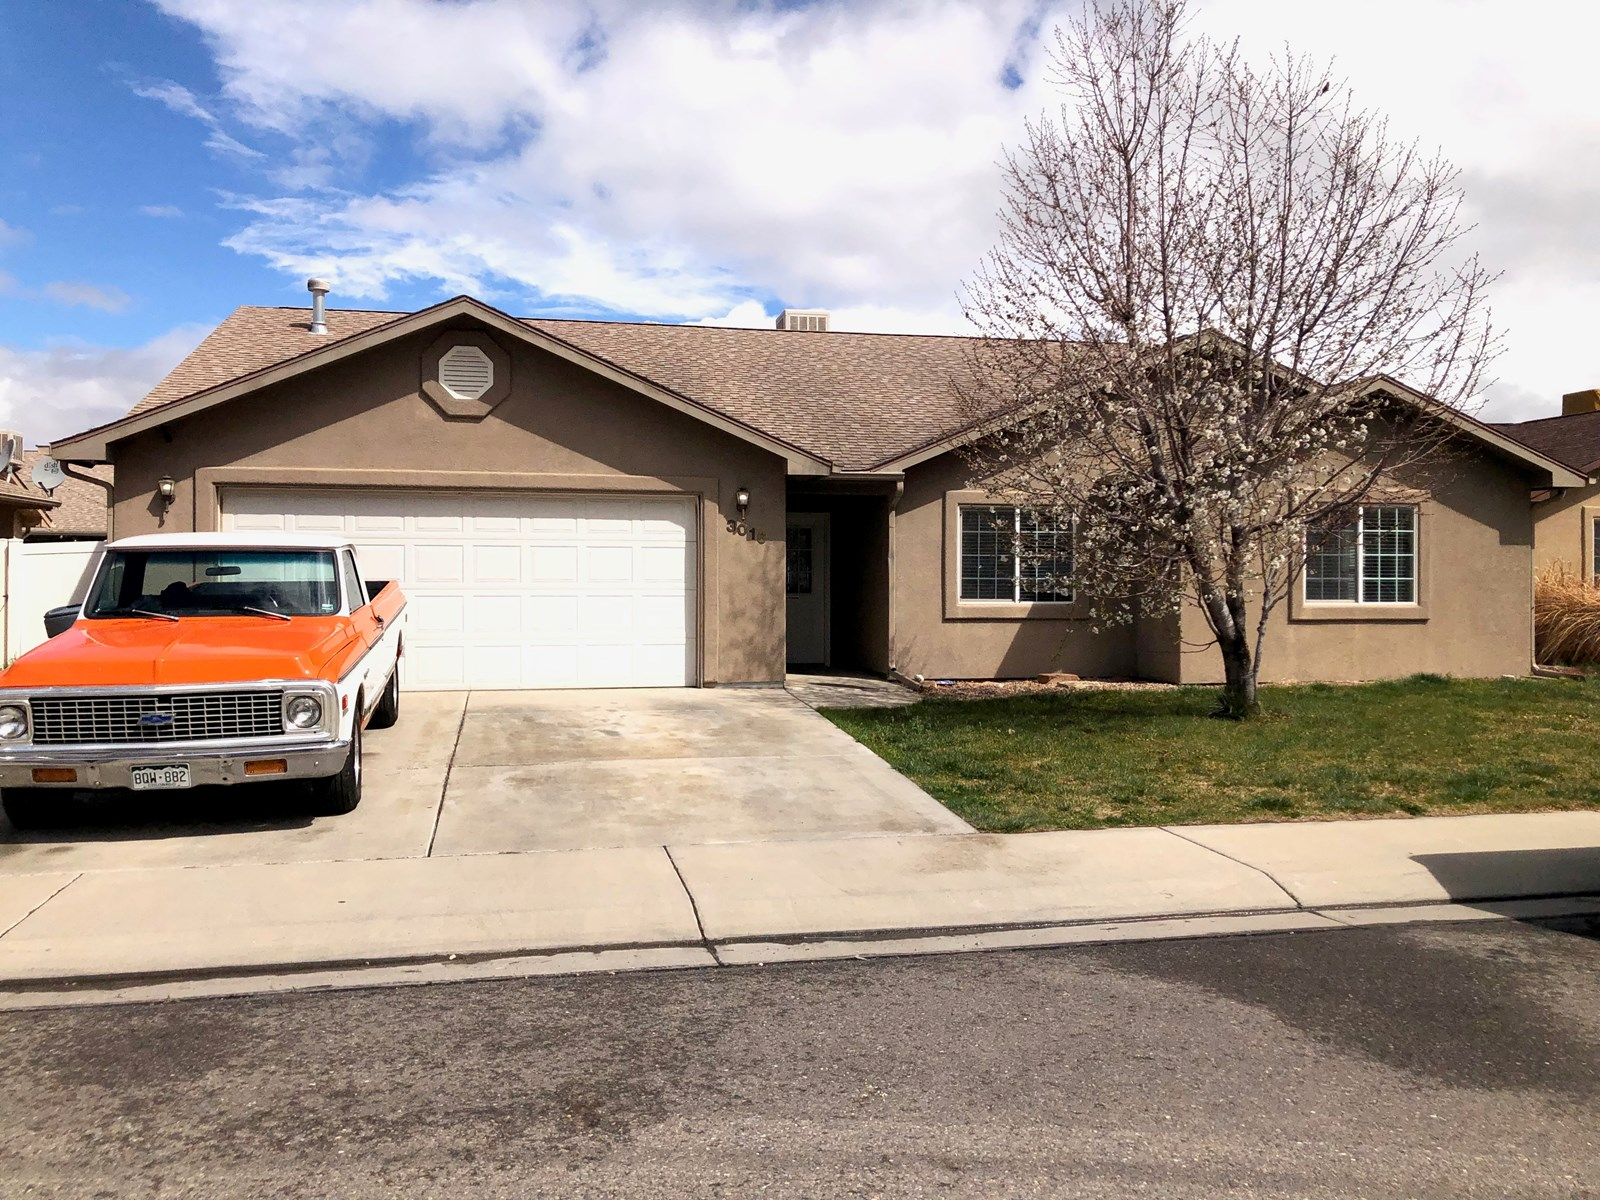 Colorado Home For Sale  Stucco 3 bd/2ba